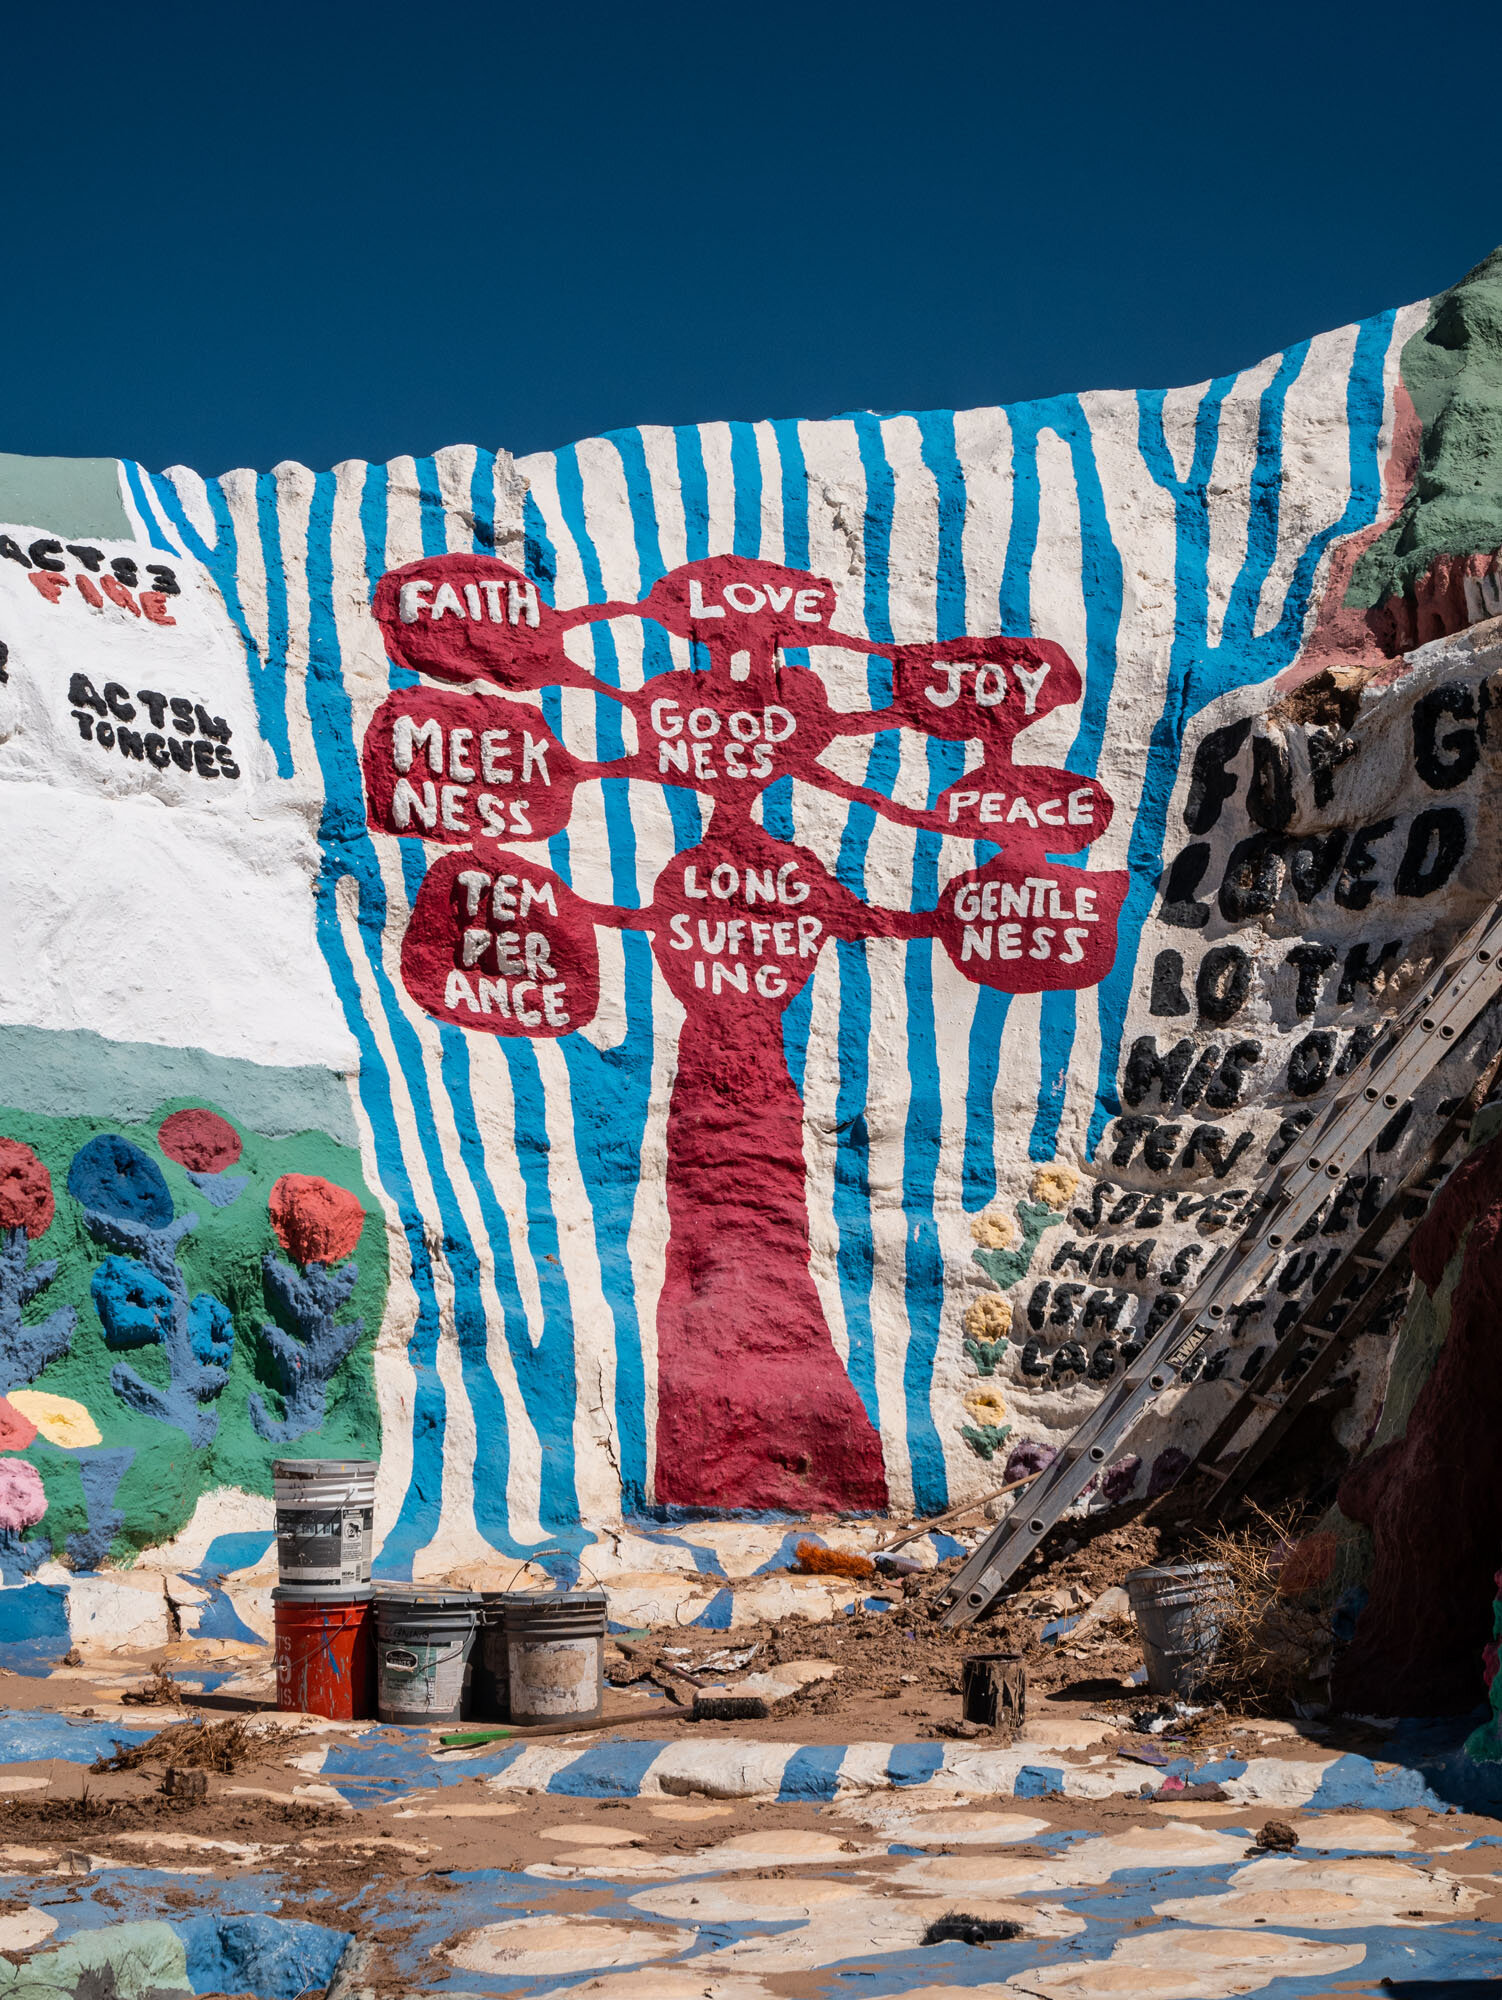 1019_SalvationMountain-1020045.jpg